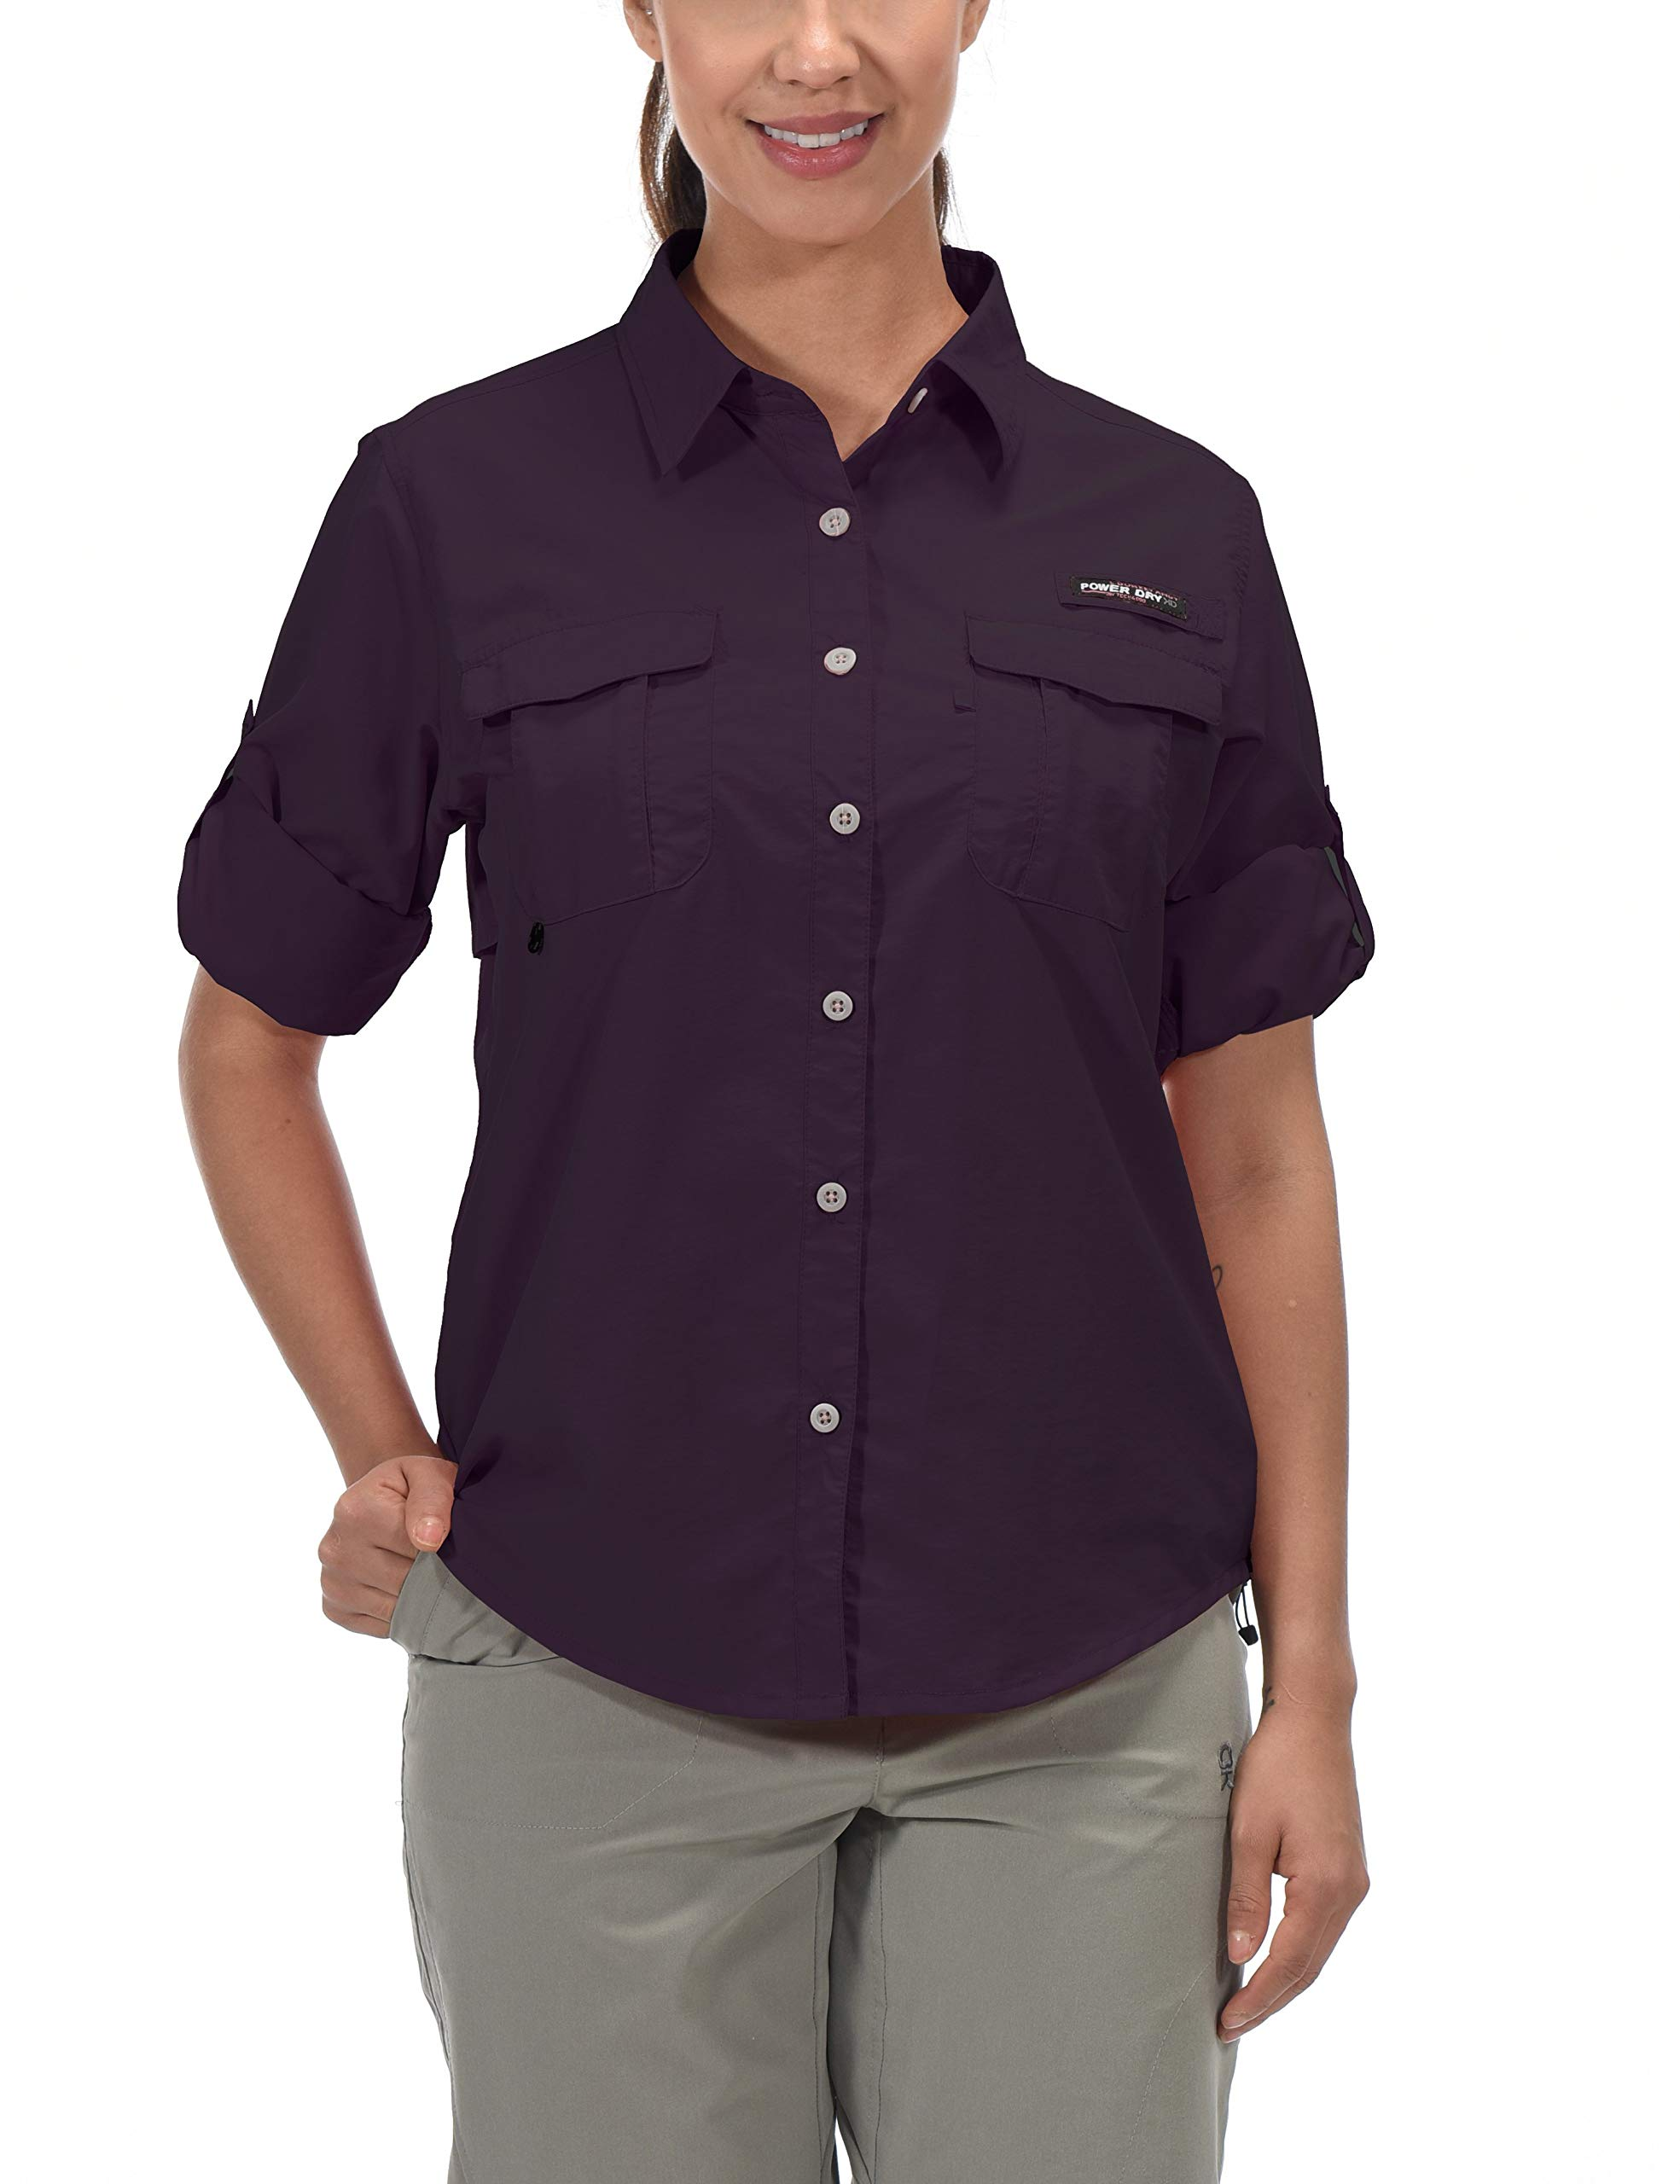 Little Donkey Andy Women's UPF 50+ UV Protection Shirt, Long Sleeve Fishing Shirt, Breathable and Fast Dry Purple XS by Little Donkey Andy